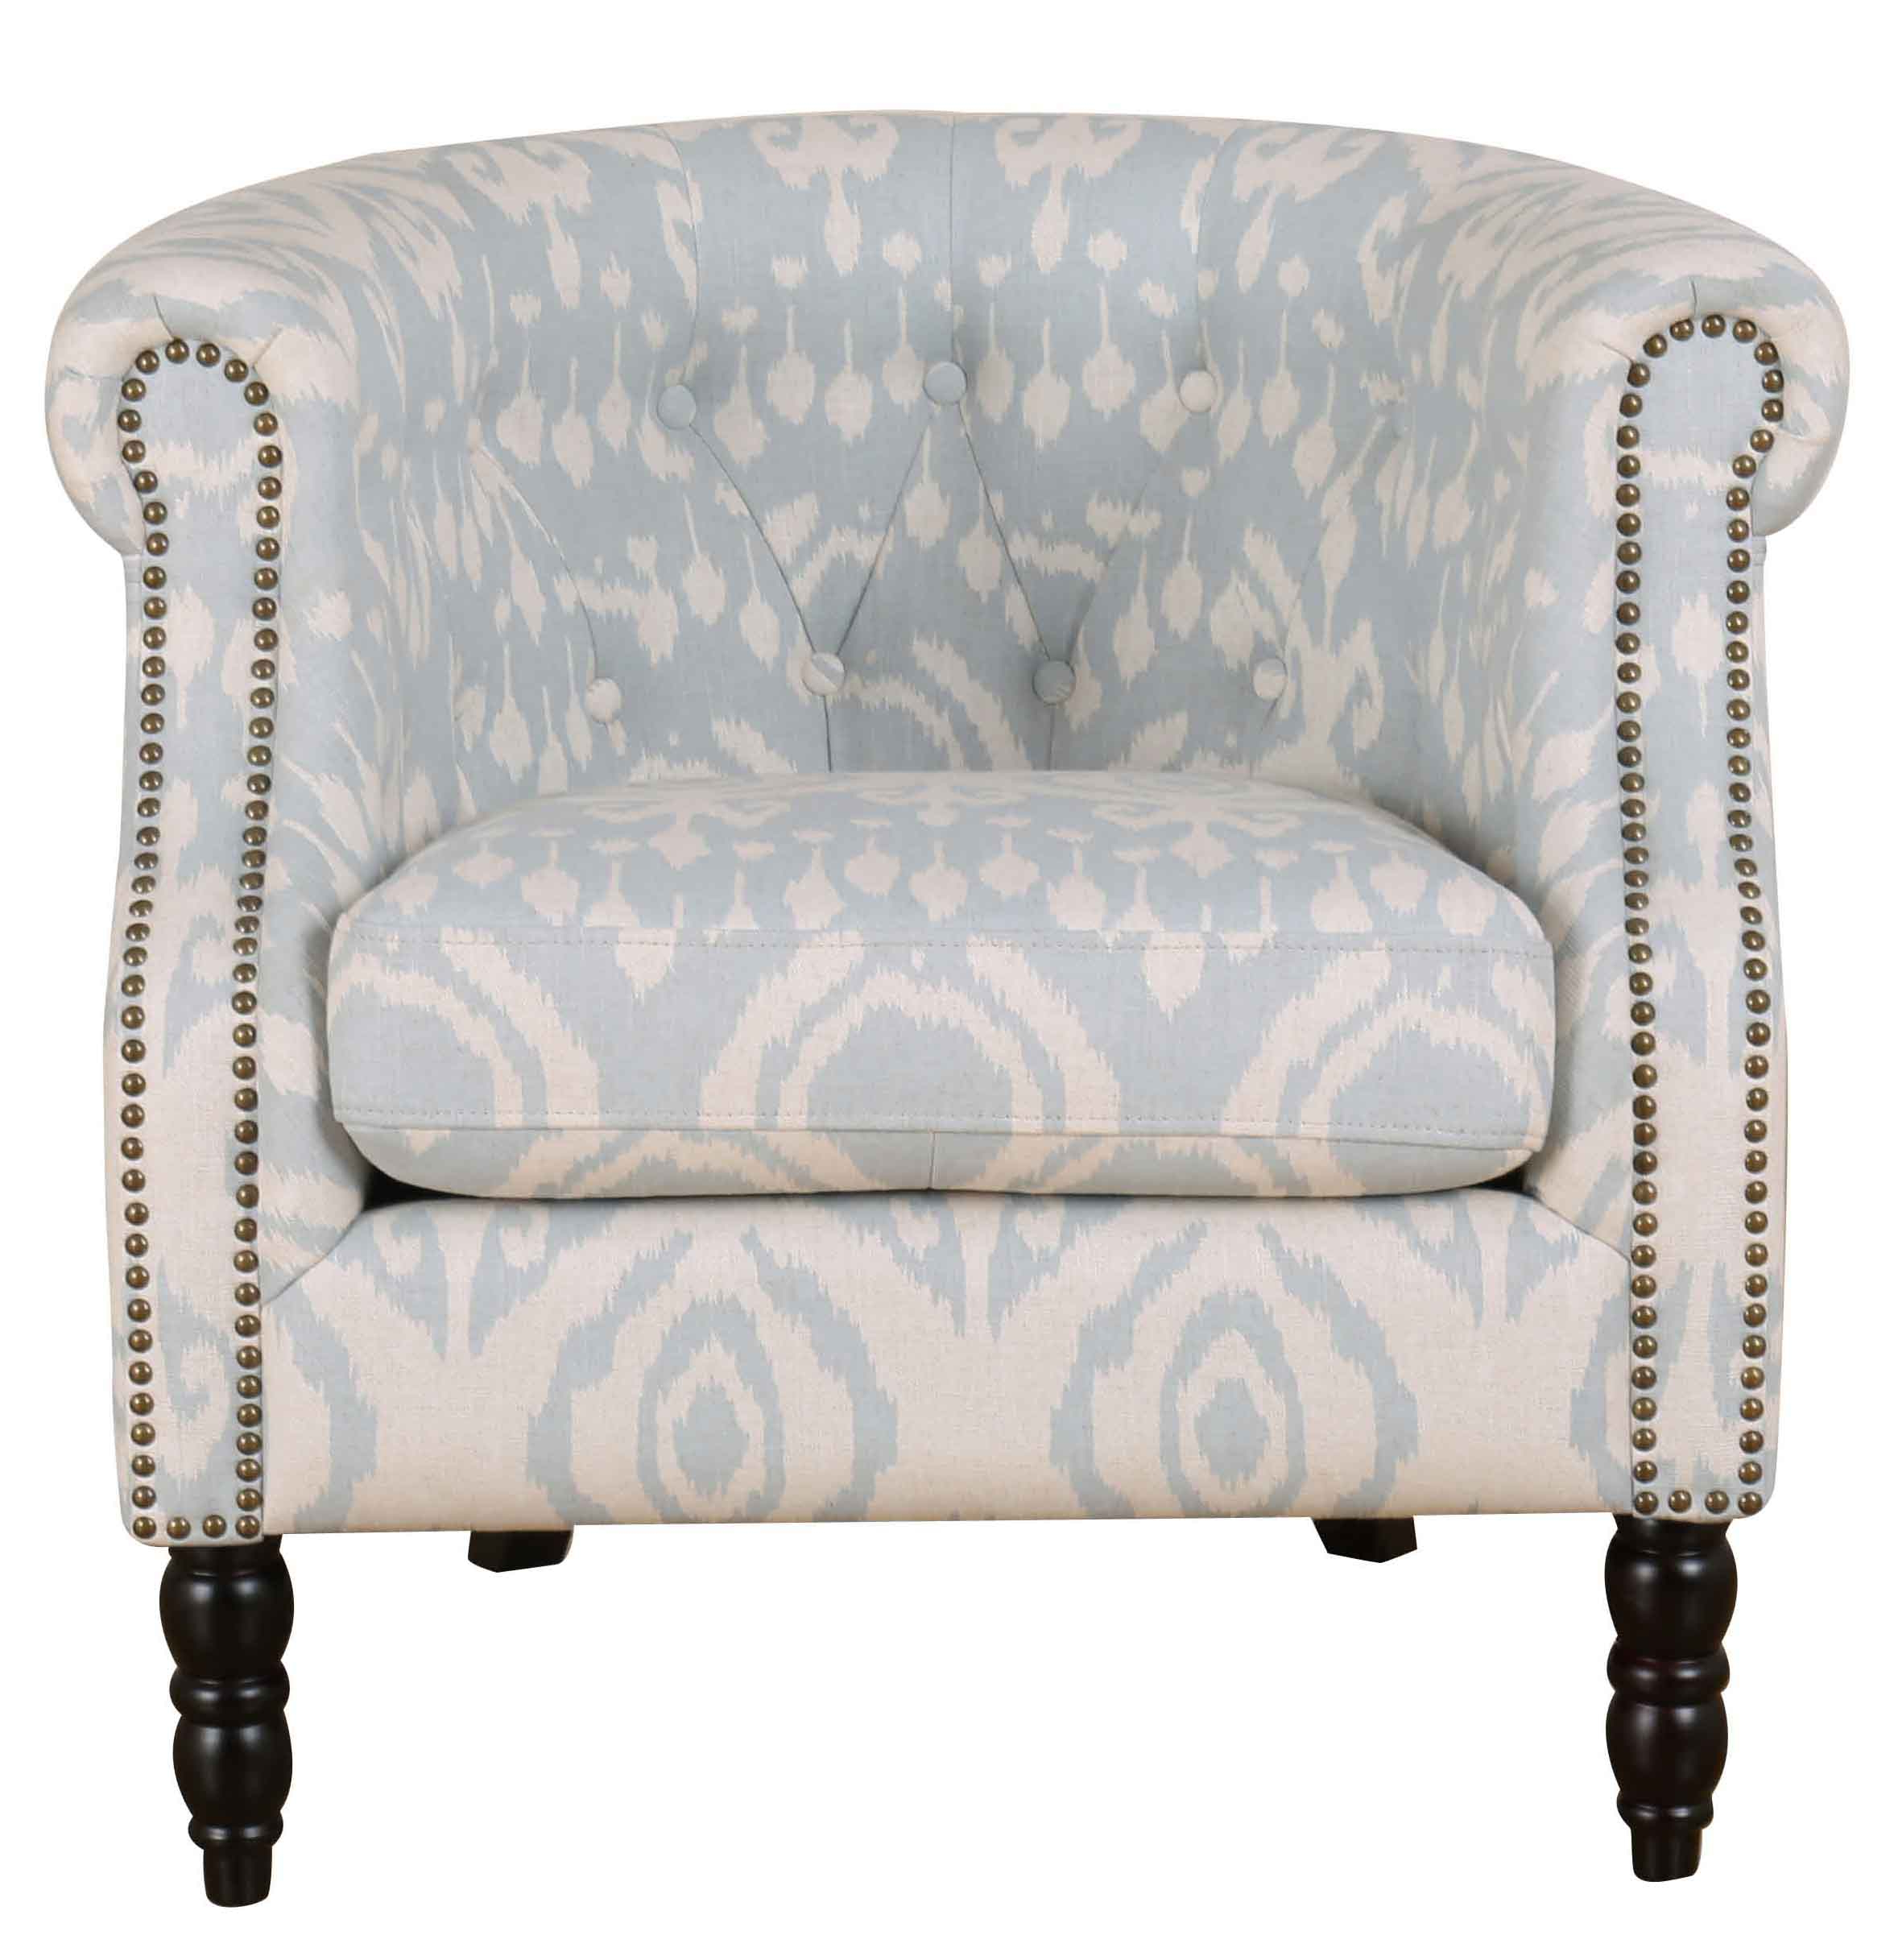 Cosette Chairandrew Martin Origin In Armchairs With Preferred Cosette Leather Sofa Chairs (View 8 of 20)